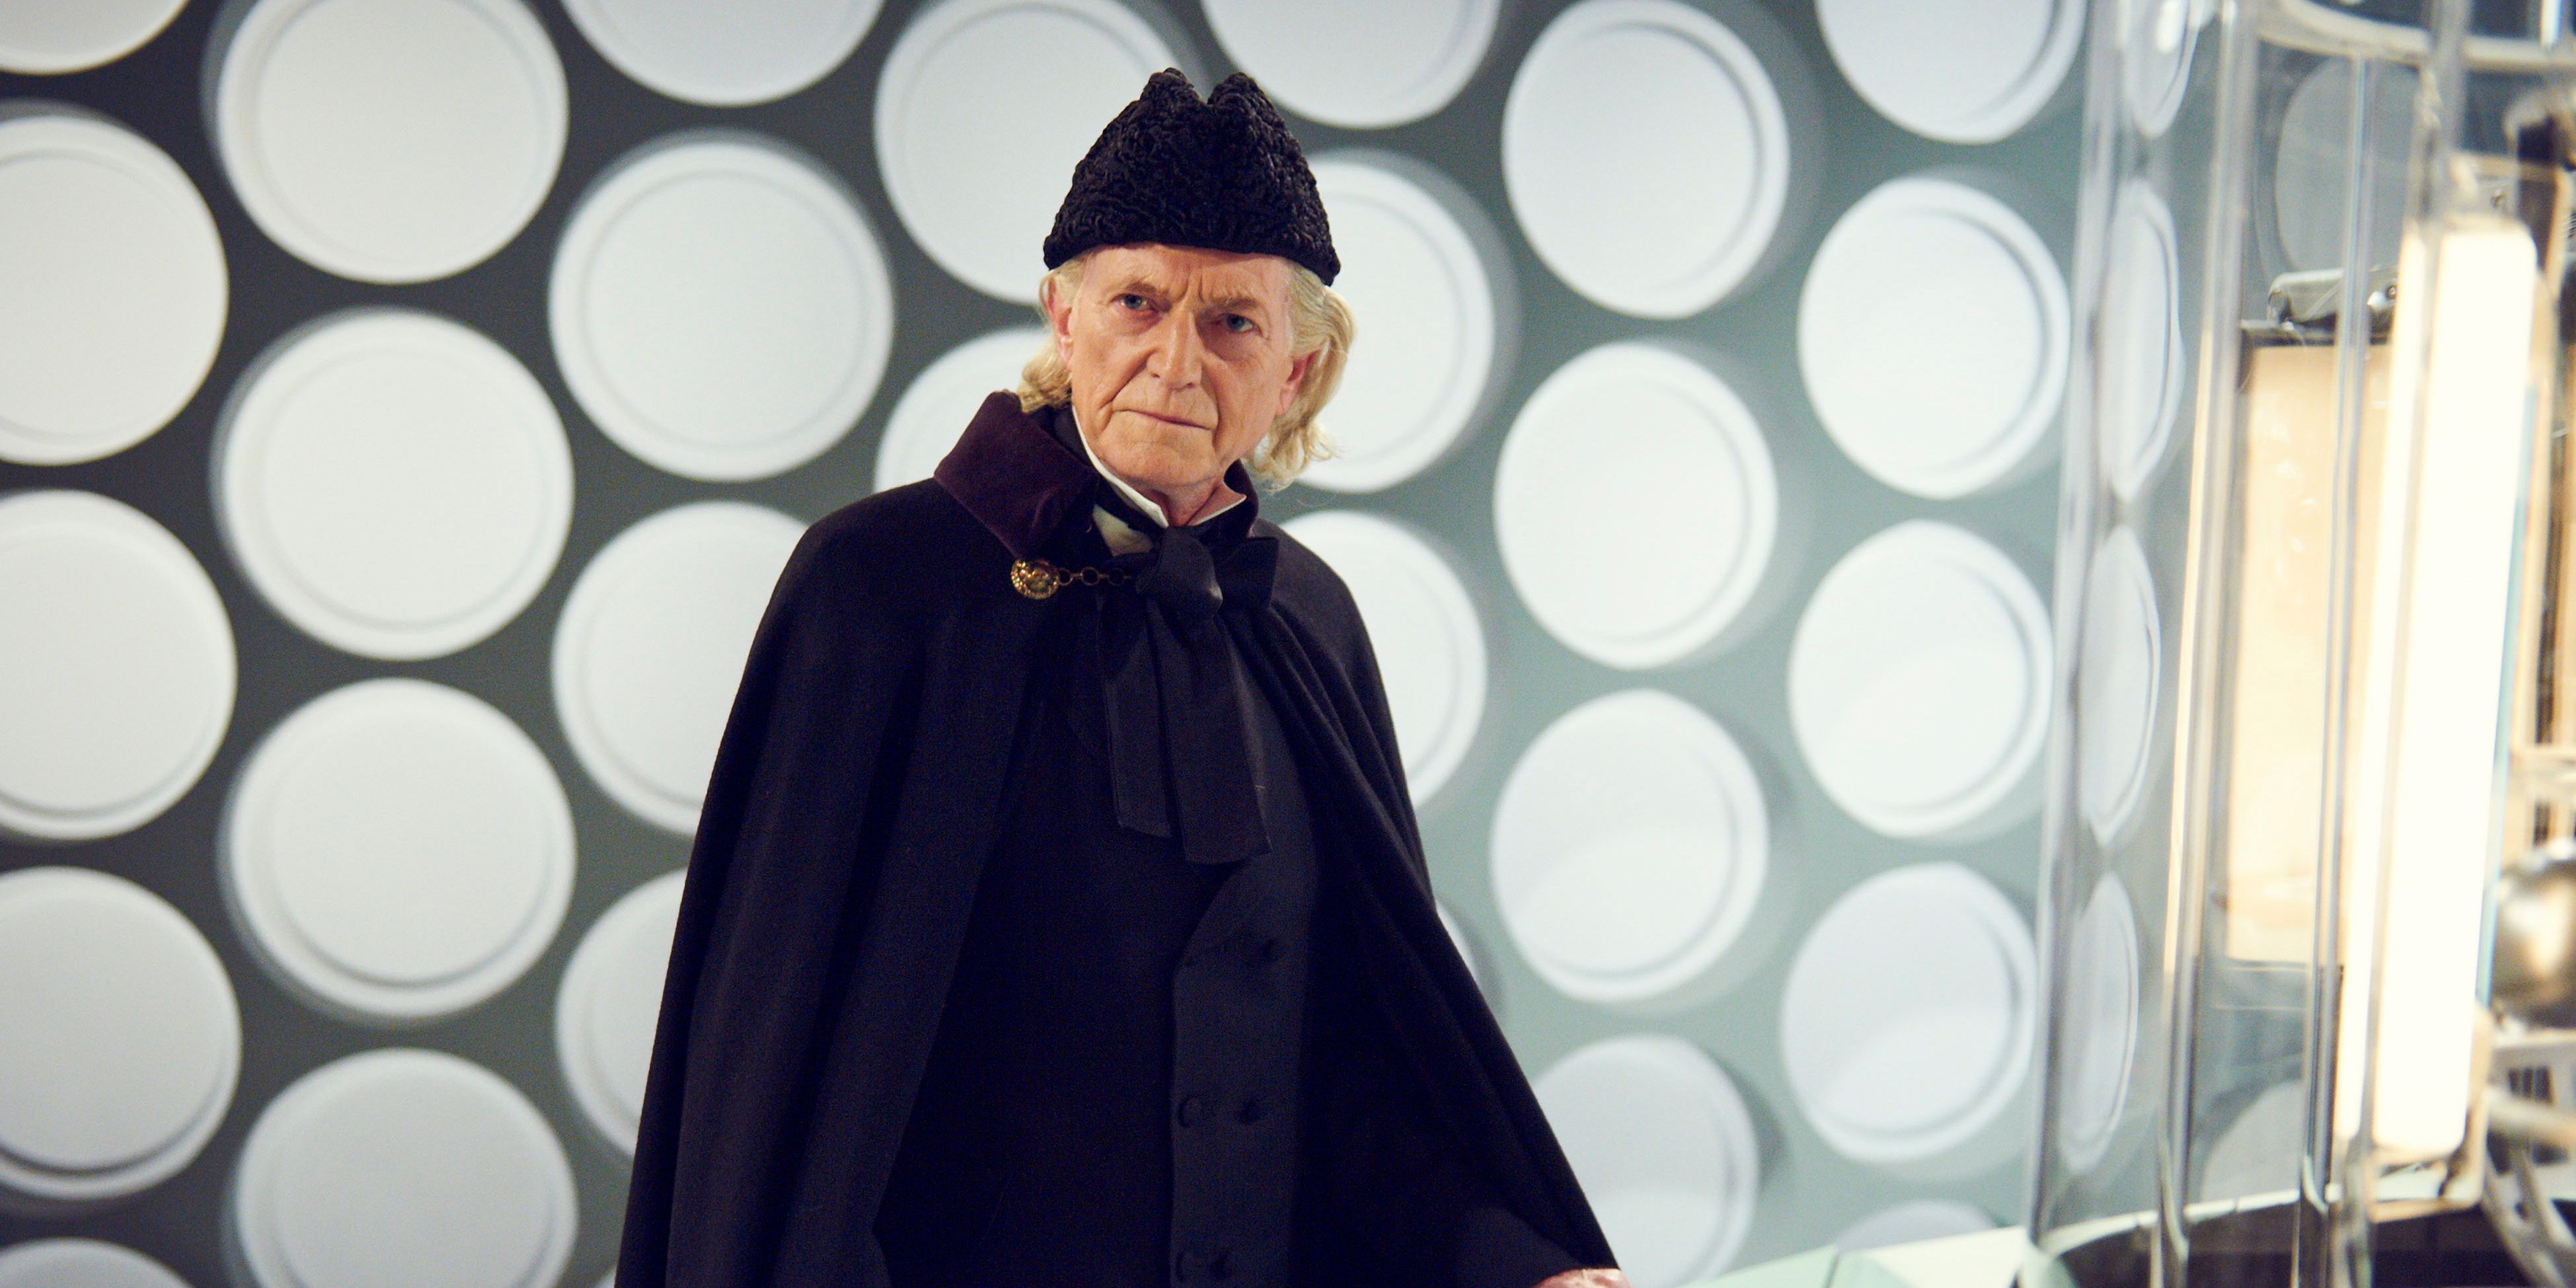 David Bradley in 'An Adventure in Space and Time'